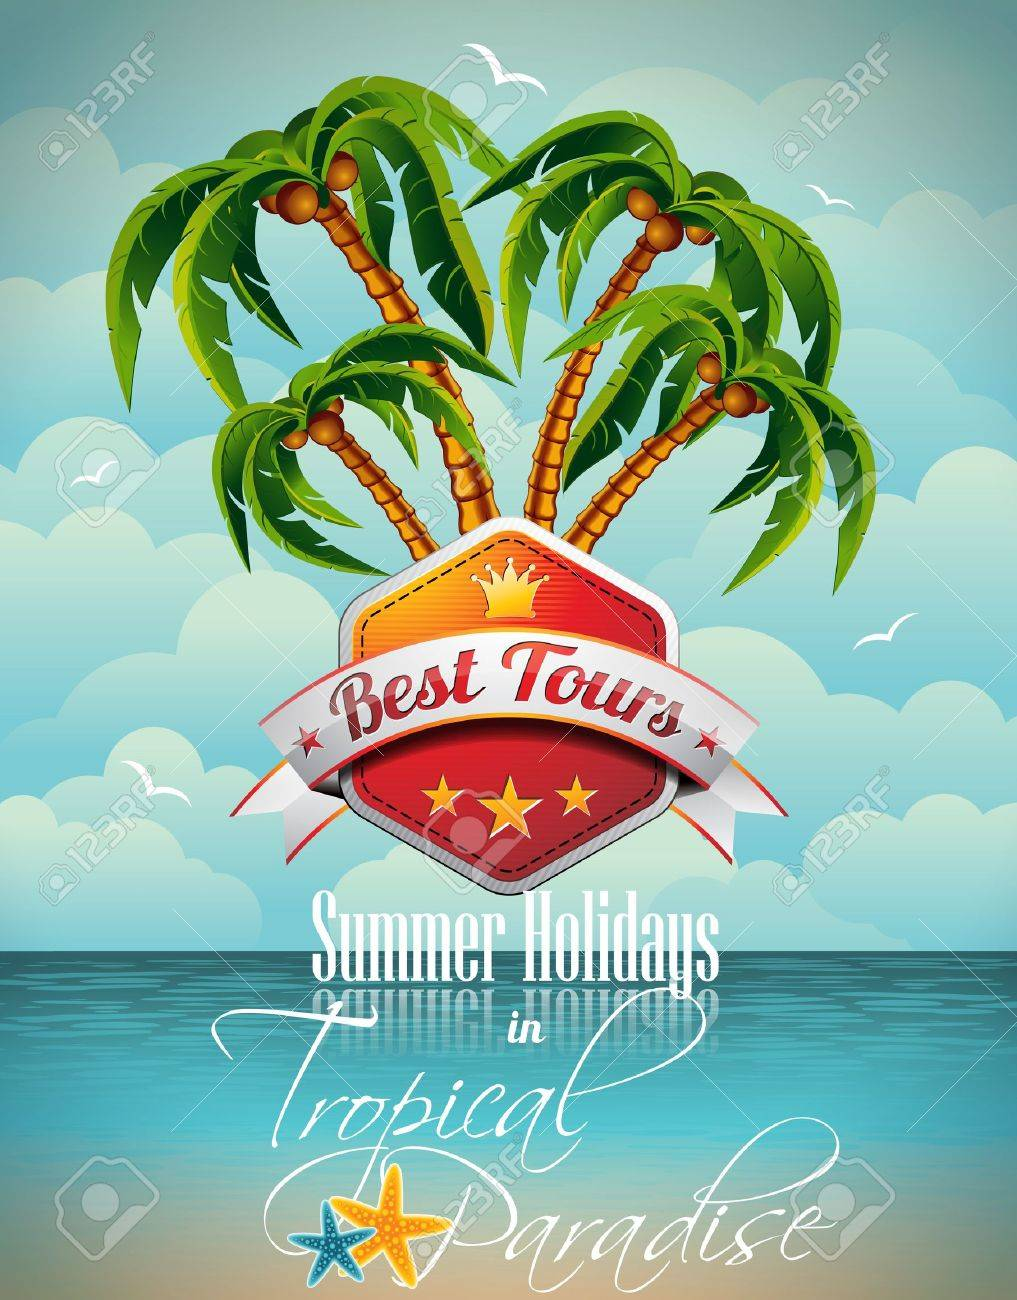 Vector Summer Holiday Flyer Design with palm trees and Best Tour Banner on sea background. Eps10 illustration. Stock Vector - 19293355